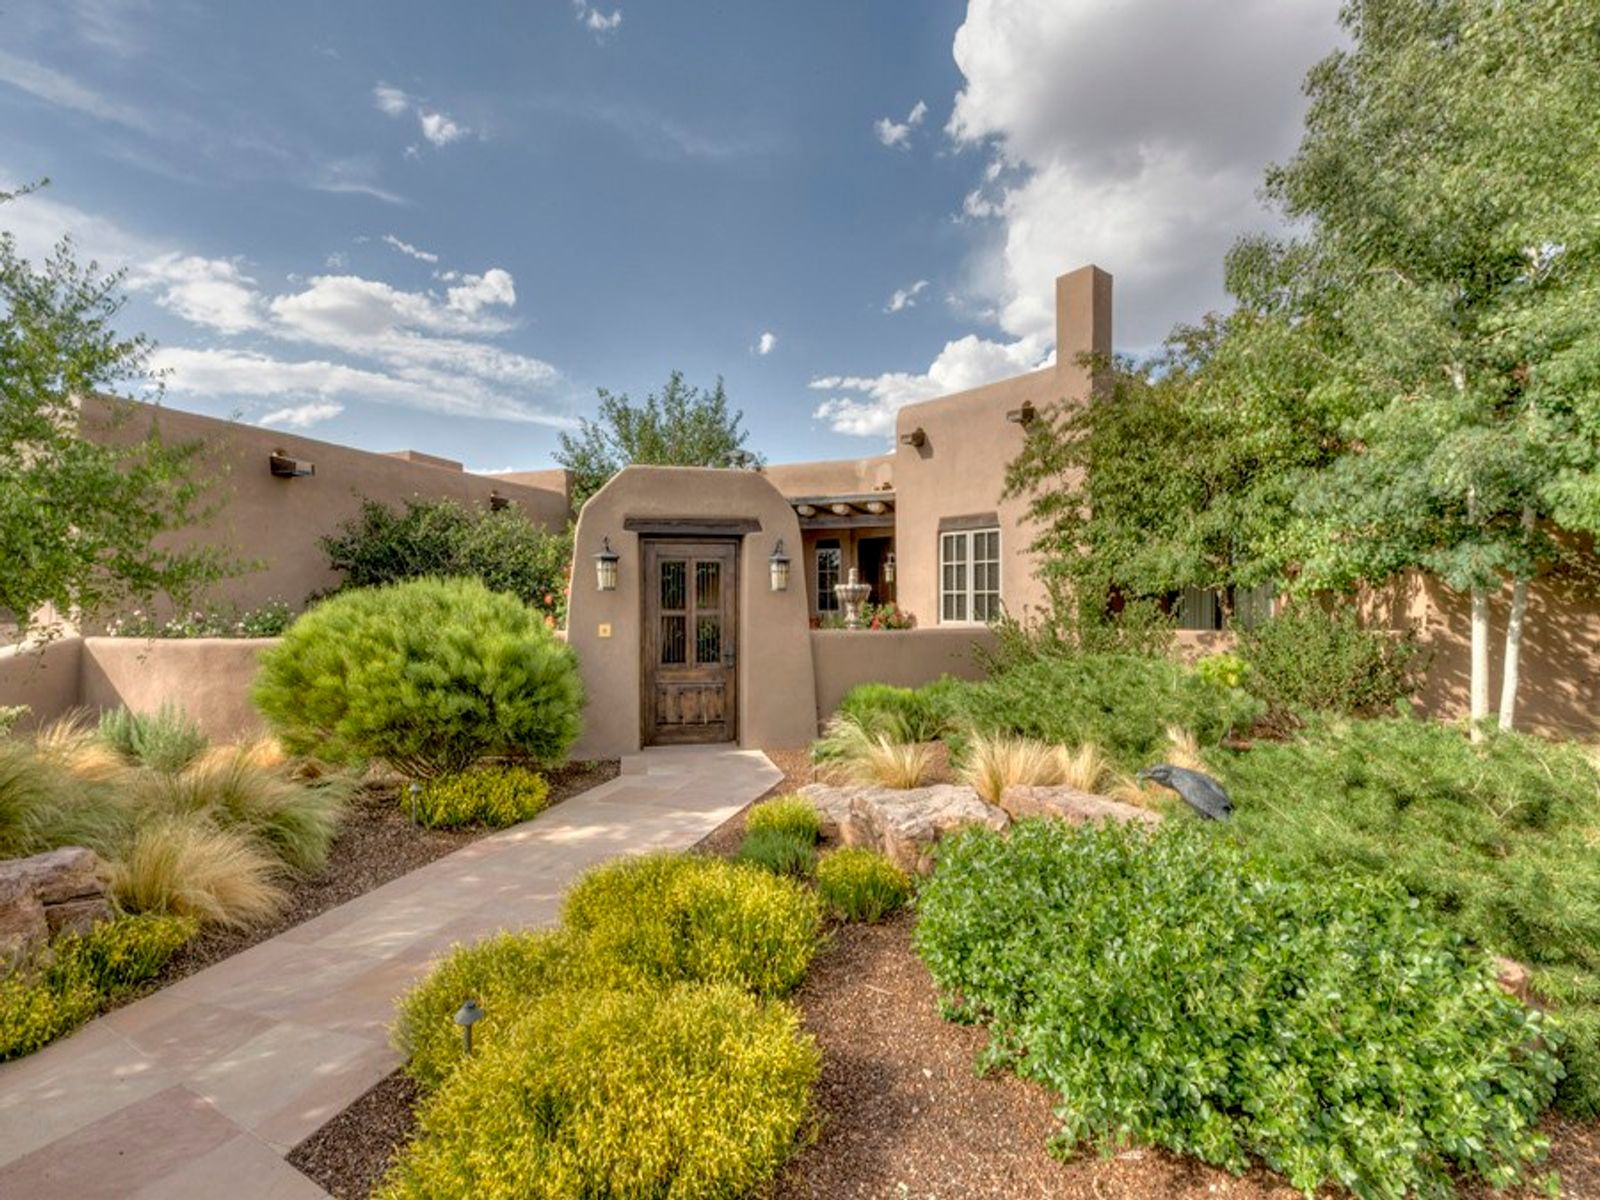 87 Calle Ventoso West, Santa Fe NM Single Family Home - Santa Fe Real Estate